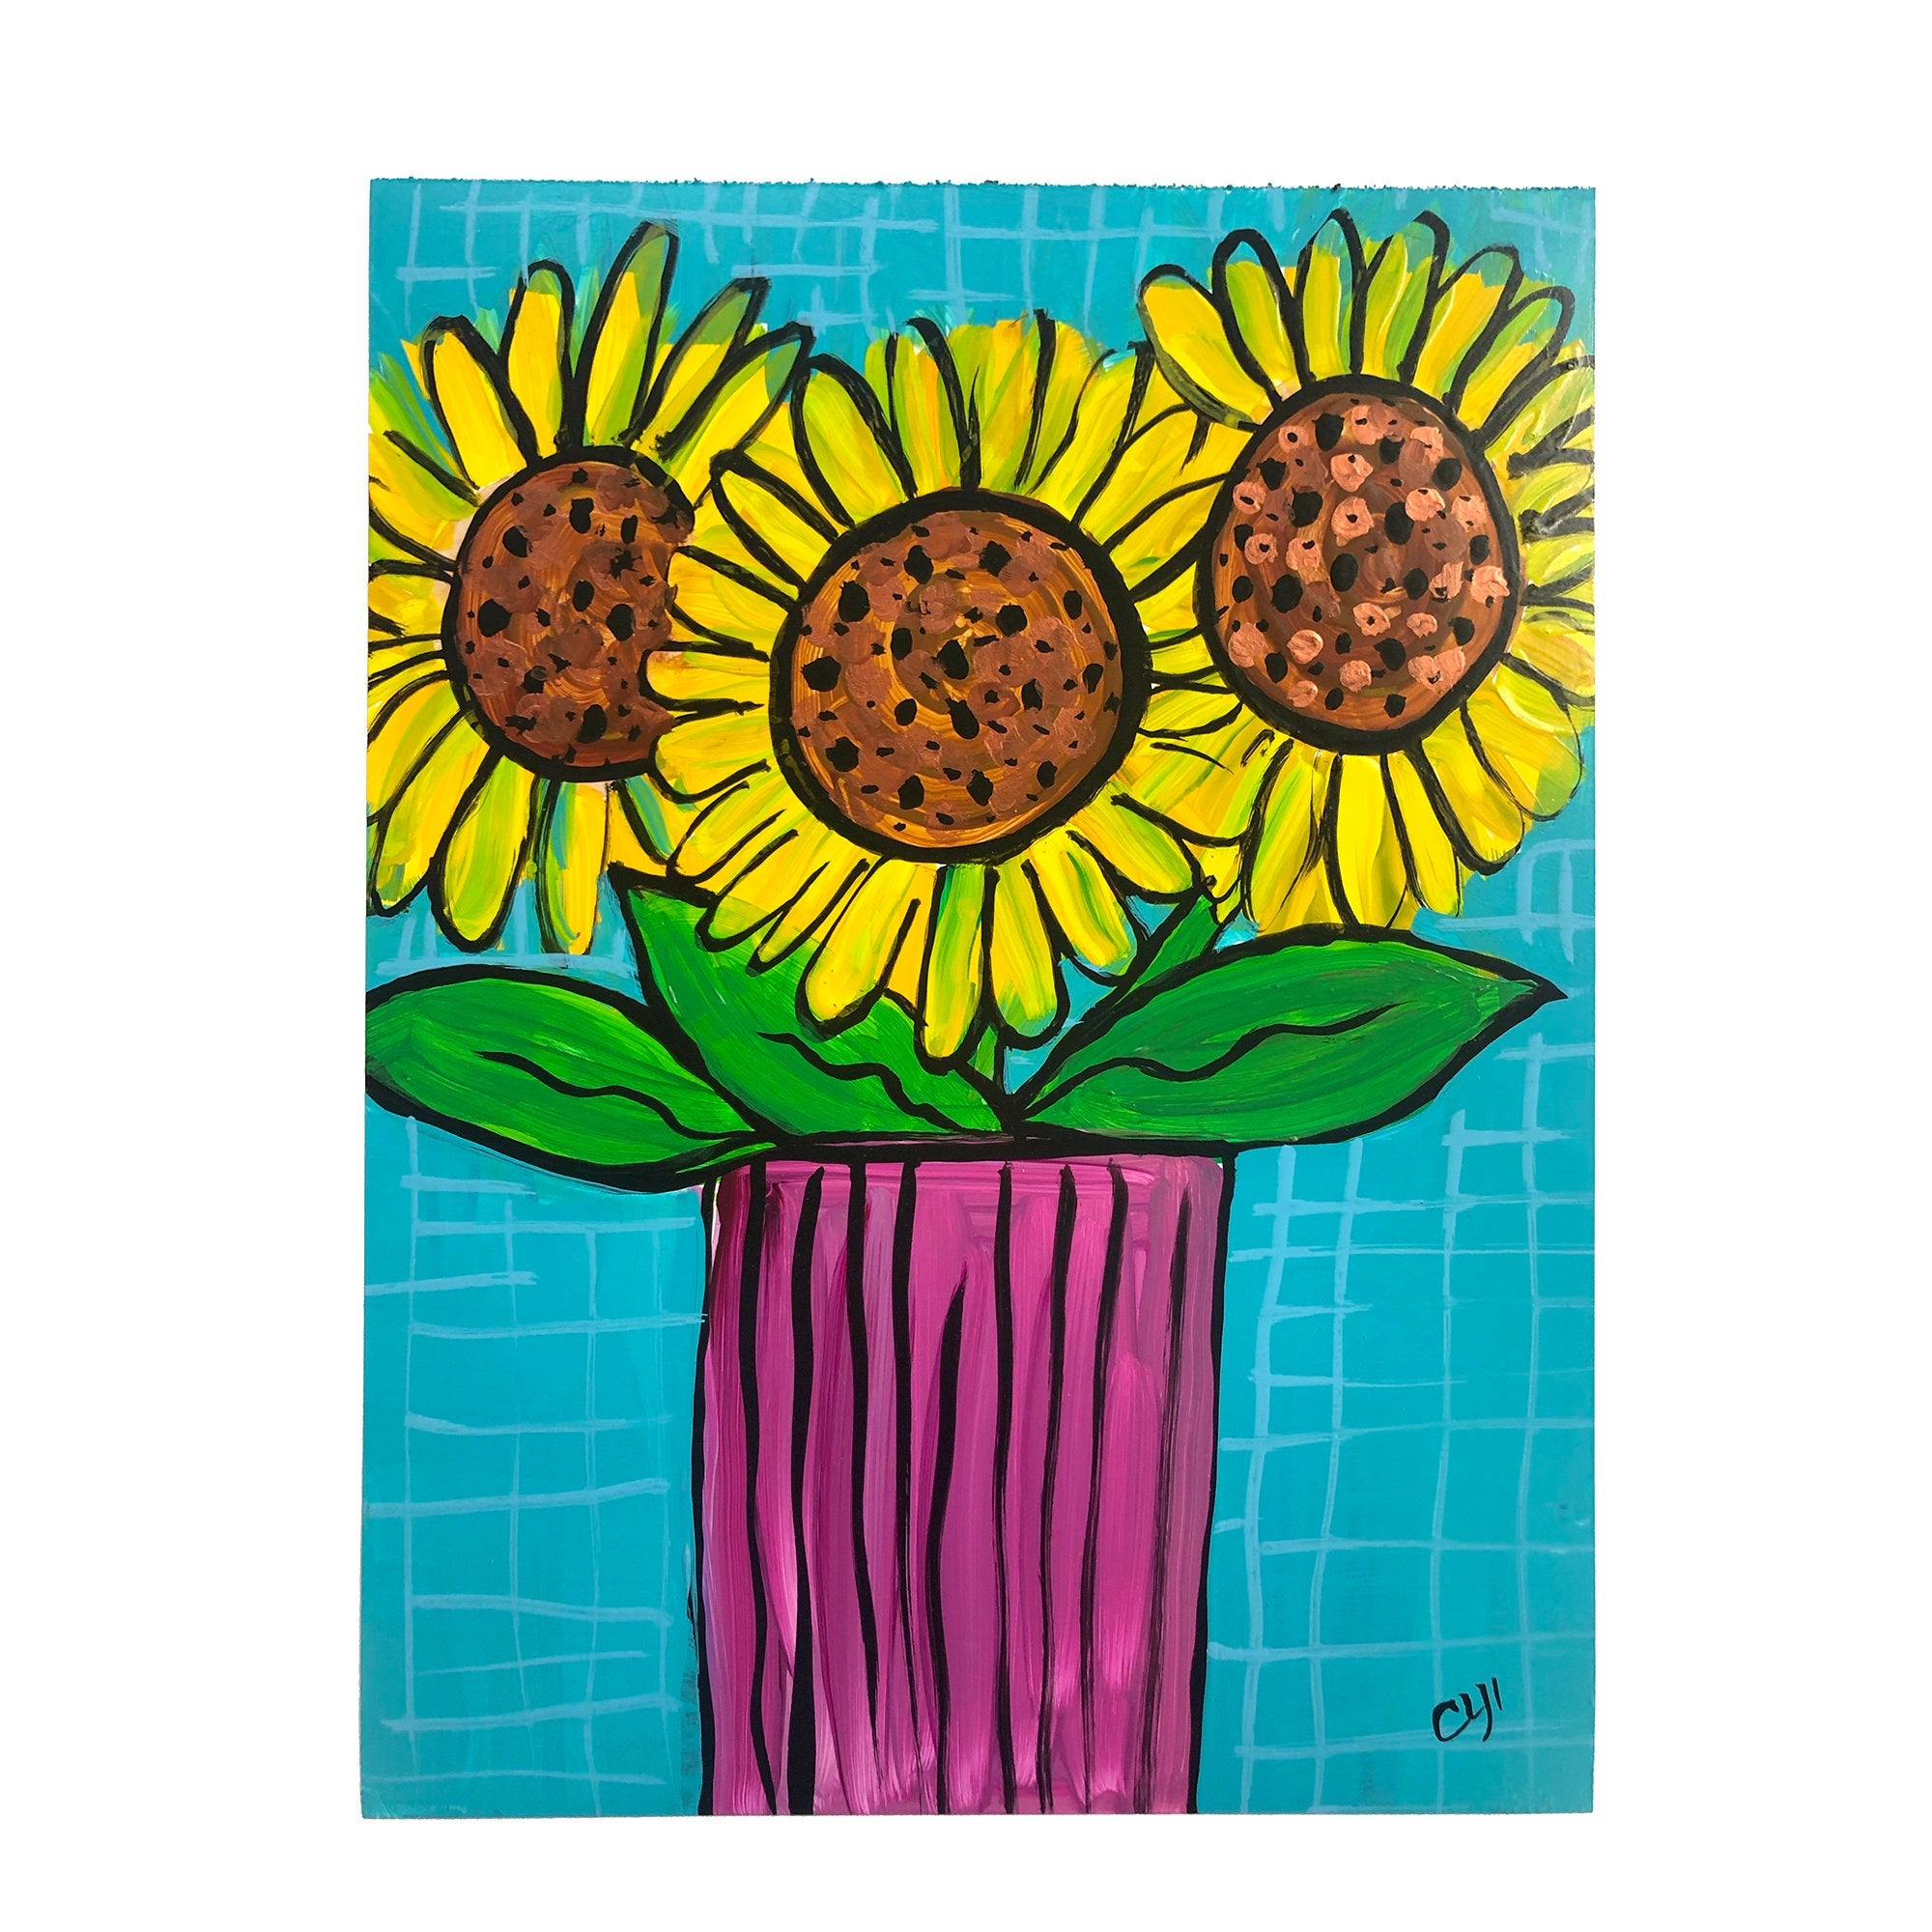 Whimsical Sun Flower Art on Paper - Original Sunflower Painting on Yupo - Cheerful Floral - 9 x 12 inches - Unframed - By Claudine Intner